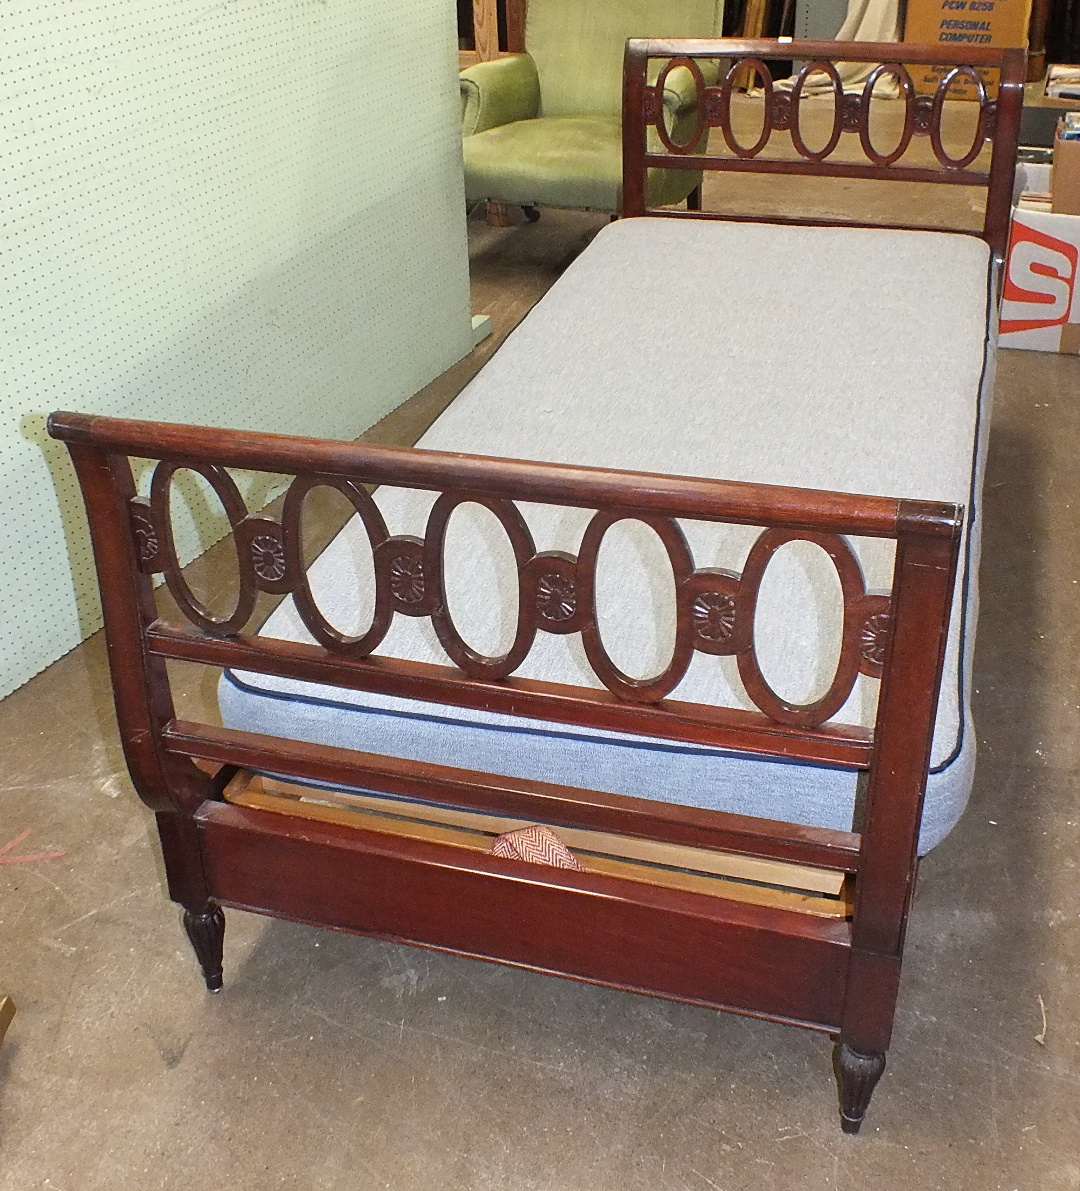 Lot 39 - A French mahogany day bed with pierced ends and short turned legs, with sprung horsehair mattress,